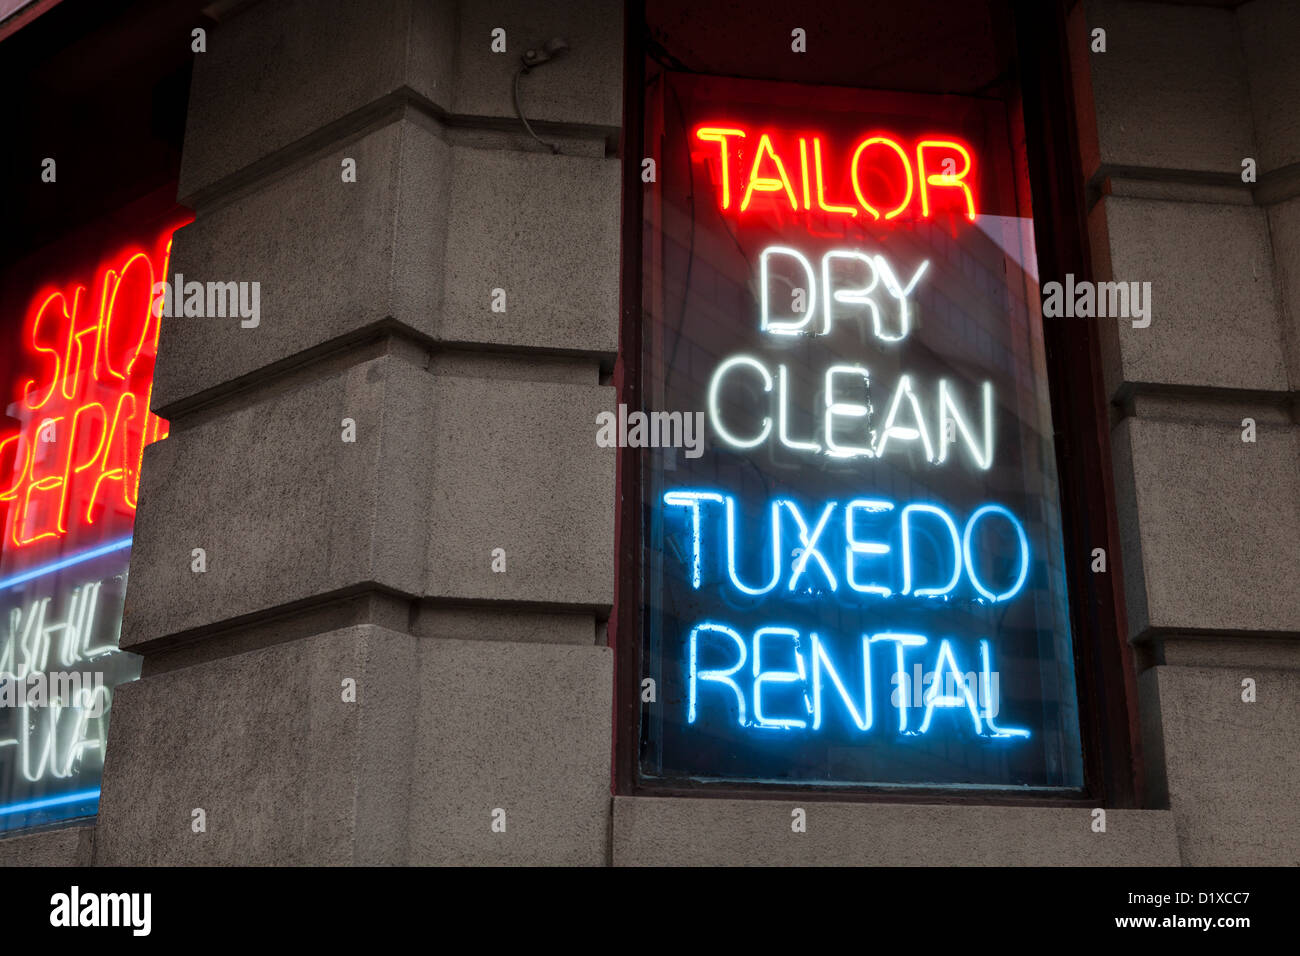 Tailor neon sign - Stock Image